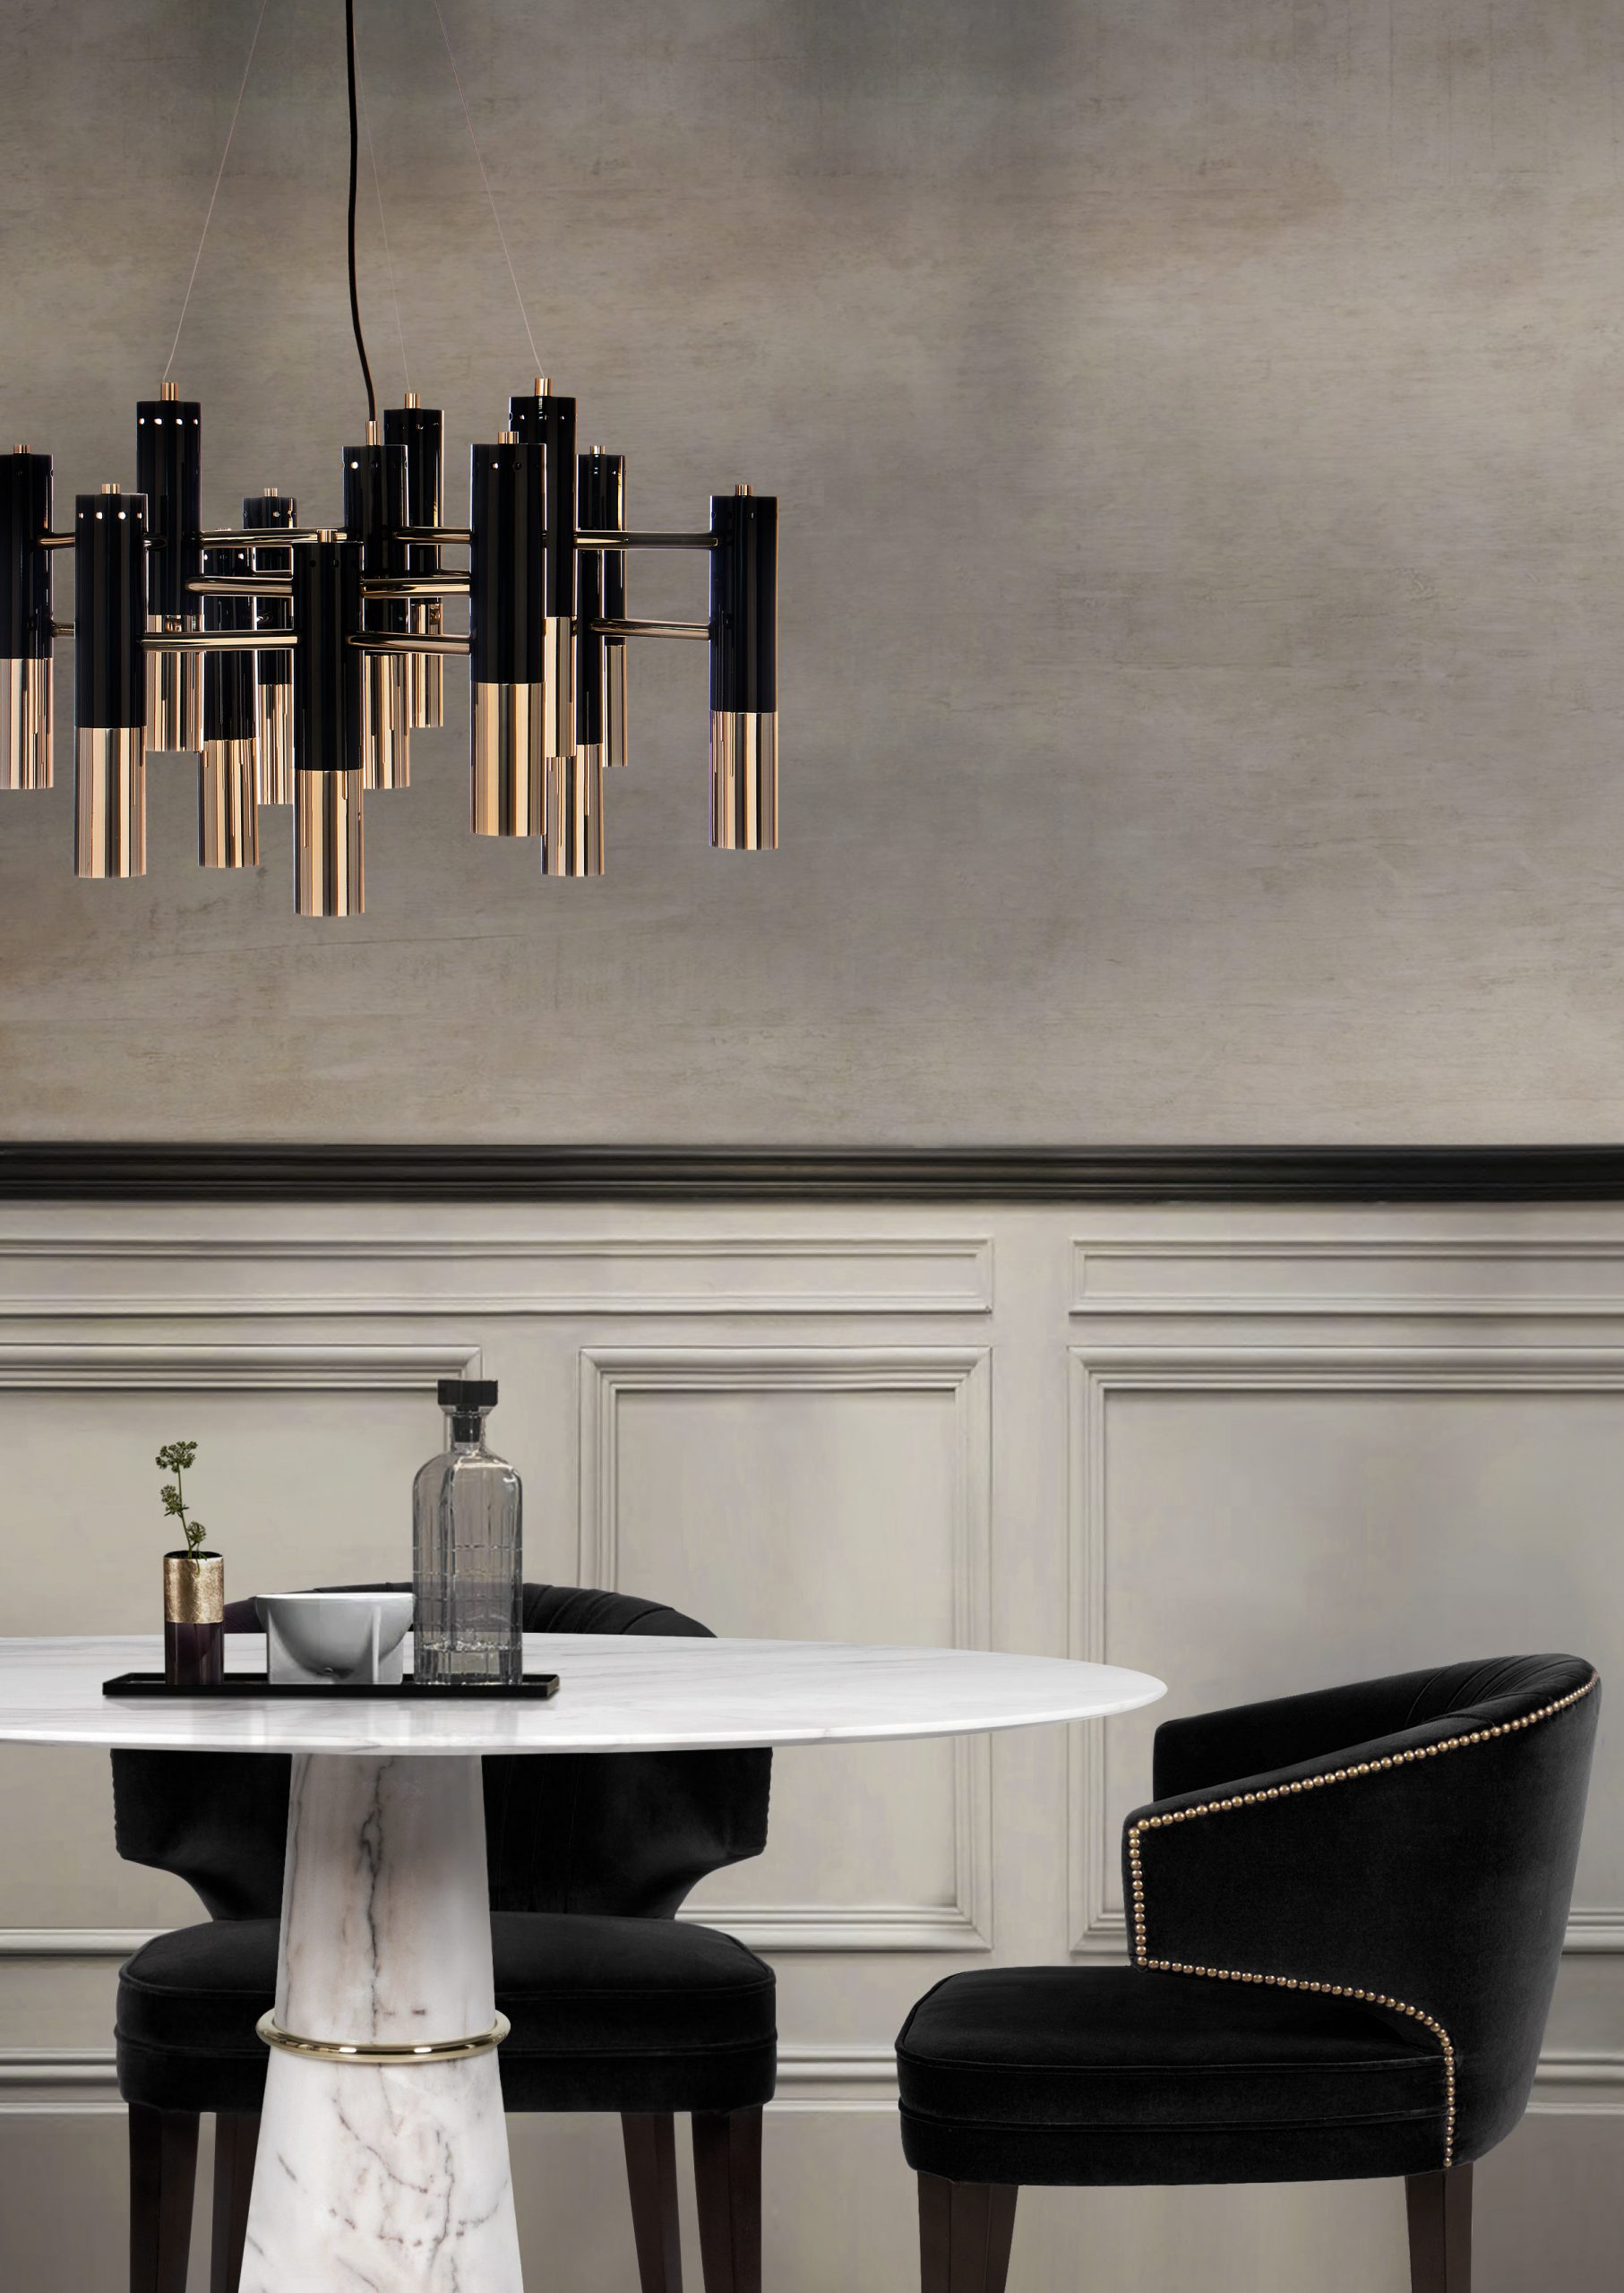 20 Dining Chairs You Will Need For A Modern Dining Room dining chairs 20 Dining Chairs You Will Need For A Modern Dining Room BB agra ibis dining ike suspension scaled